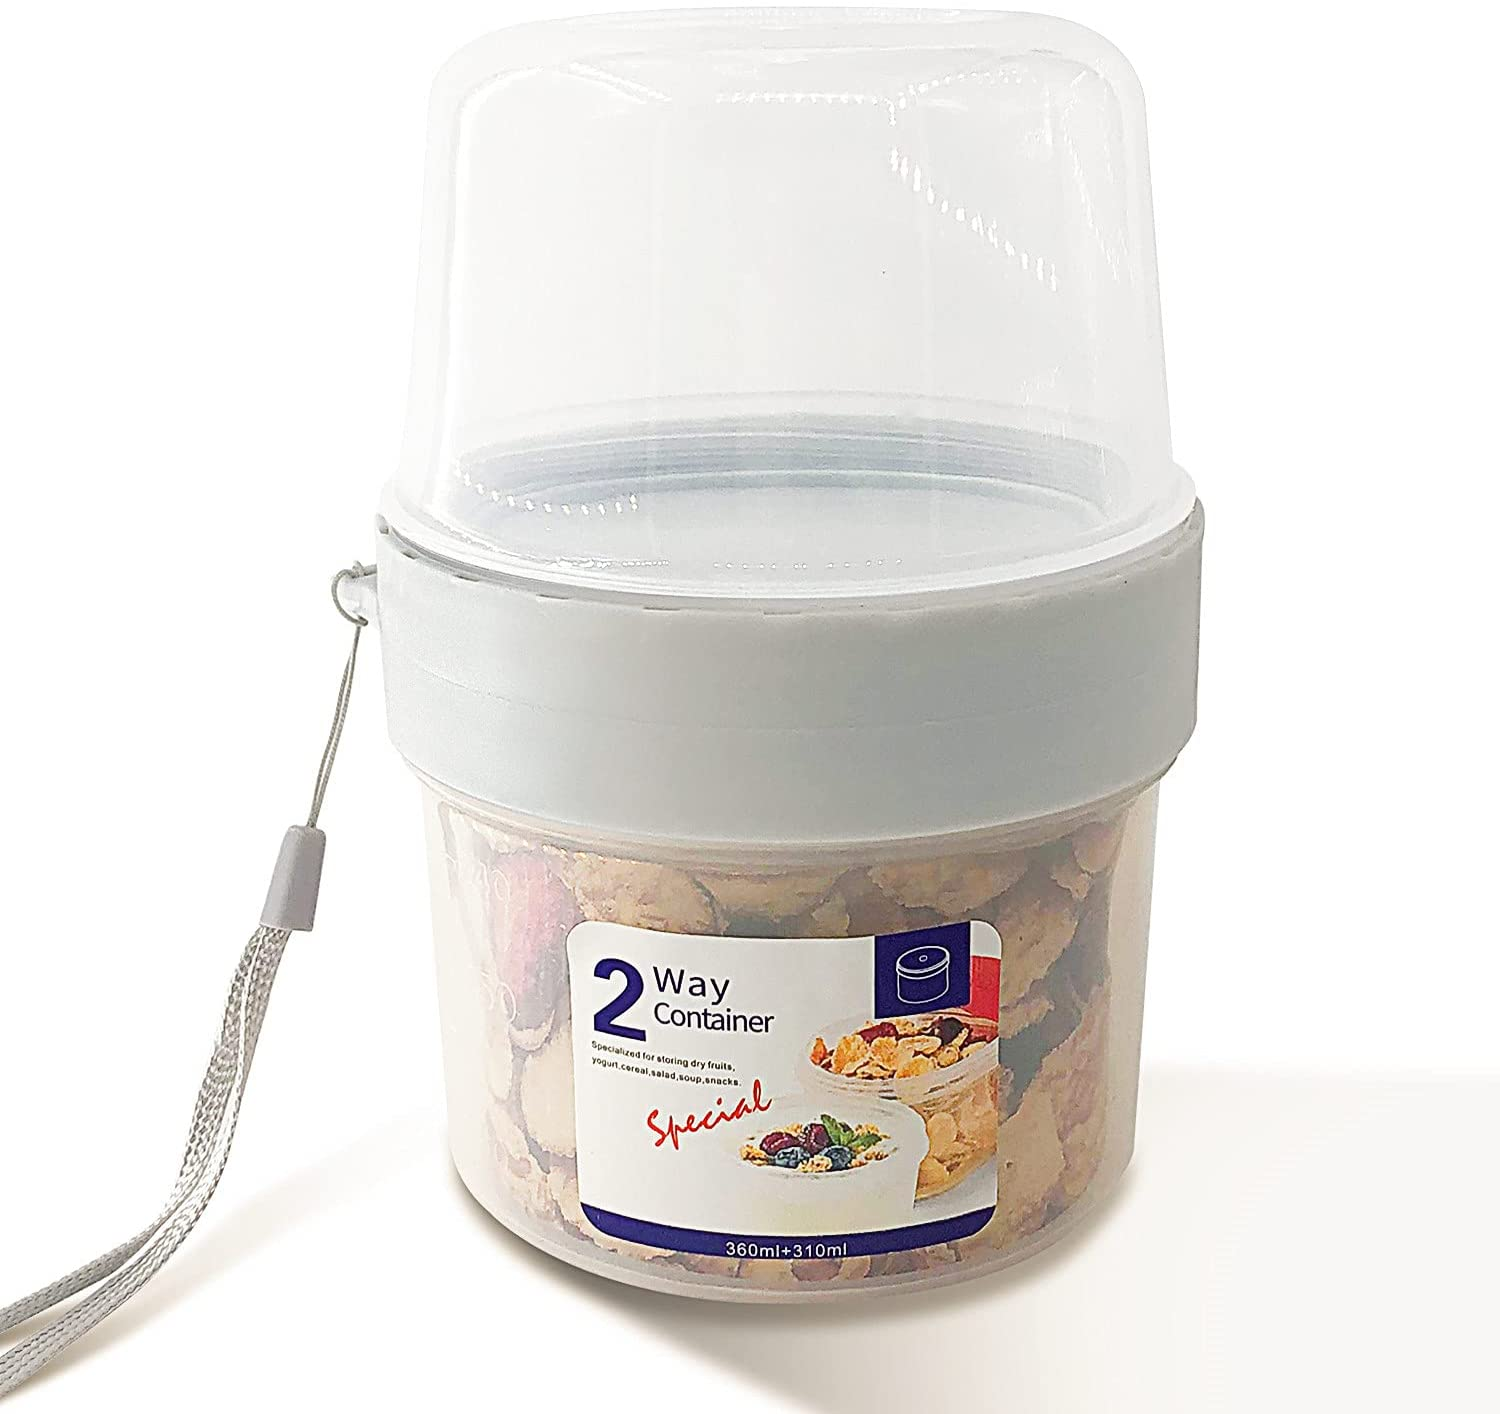 HeNai PETWEKAN Breakfast On The Go Cups,Yogurt Portable Cups Large Capacity Sealed Double Layer Food Container With Cereal Oatmeal or Fruit Container (310ml+360ml)